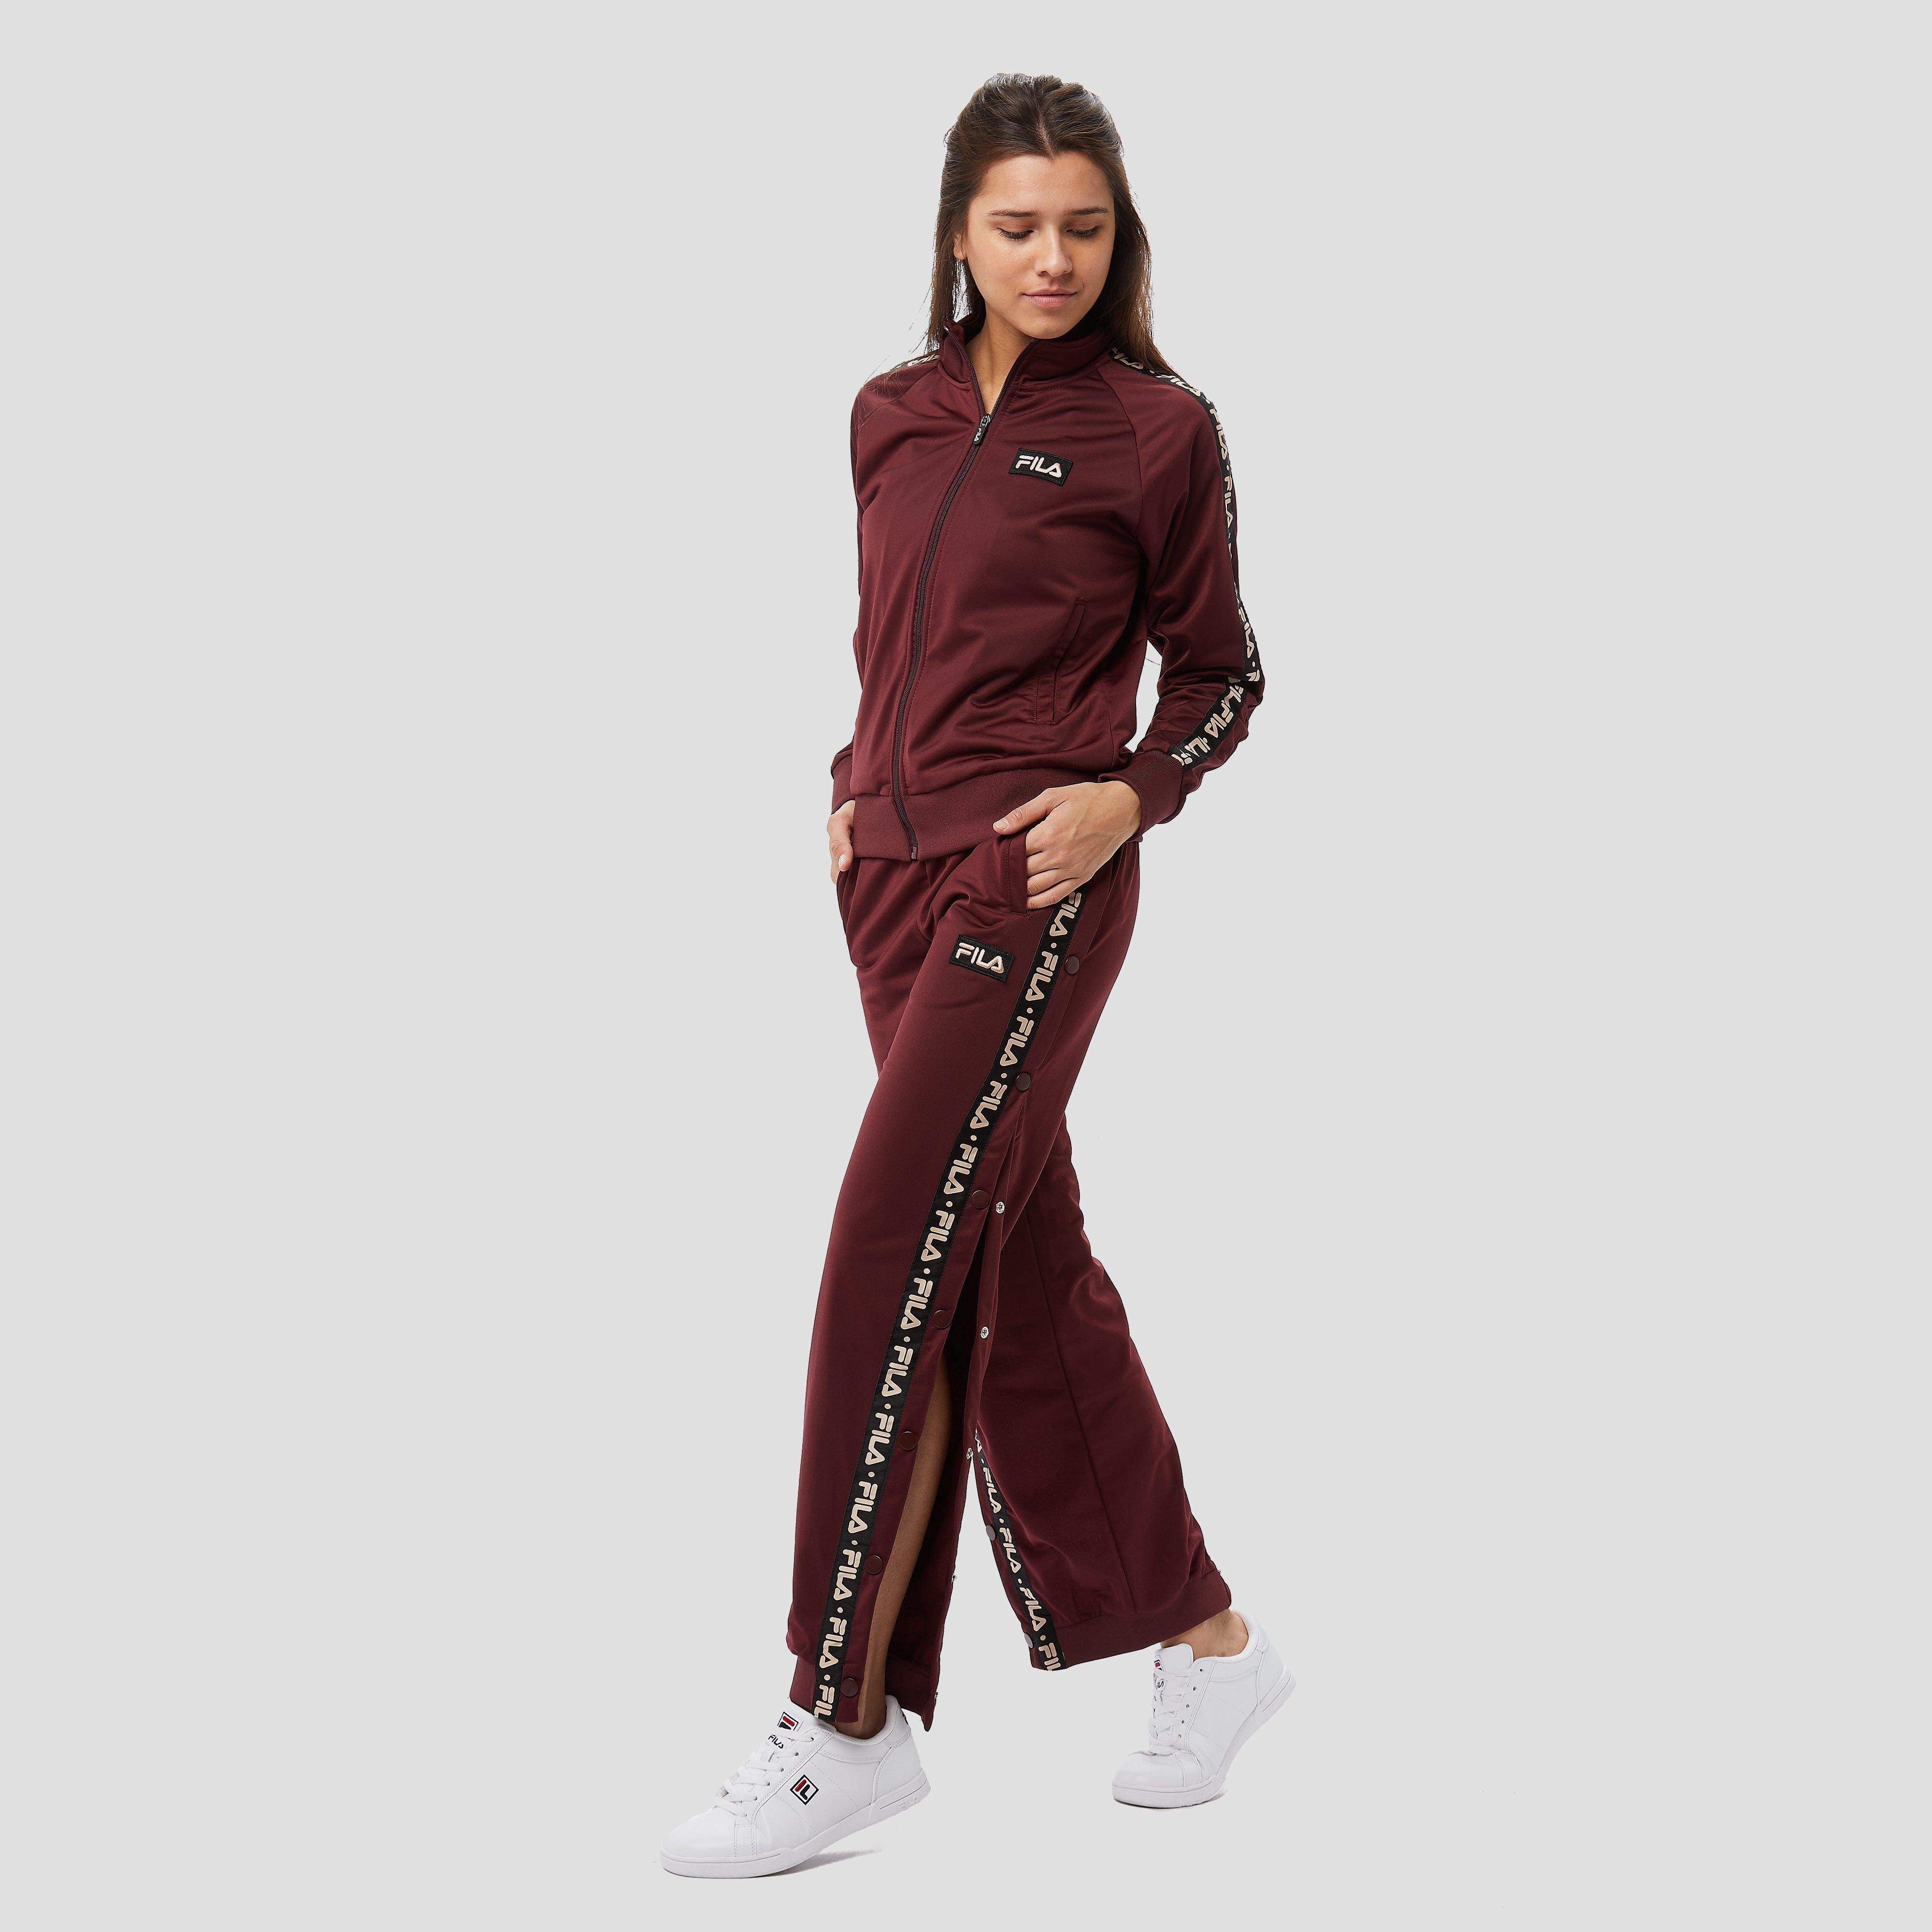 FILA SOBIO TRAININGSBROEK BORDEAUX ROOD DAMES